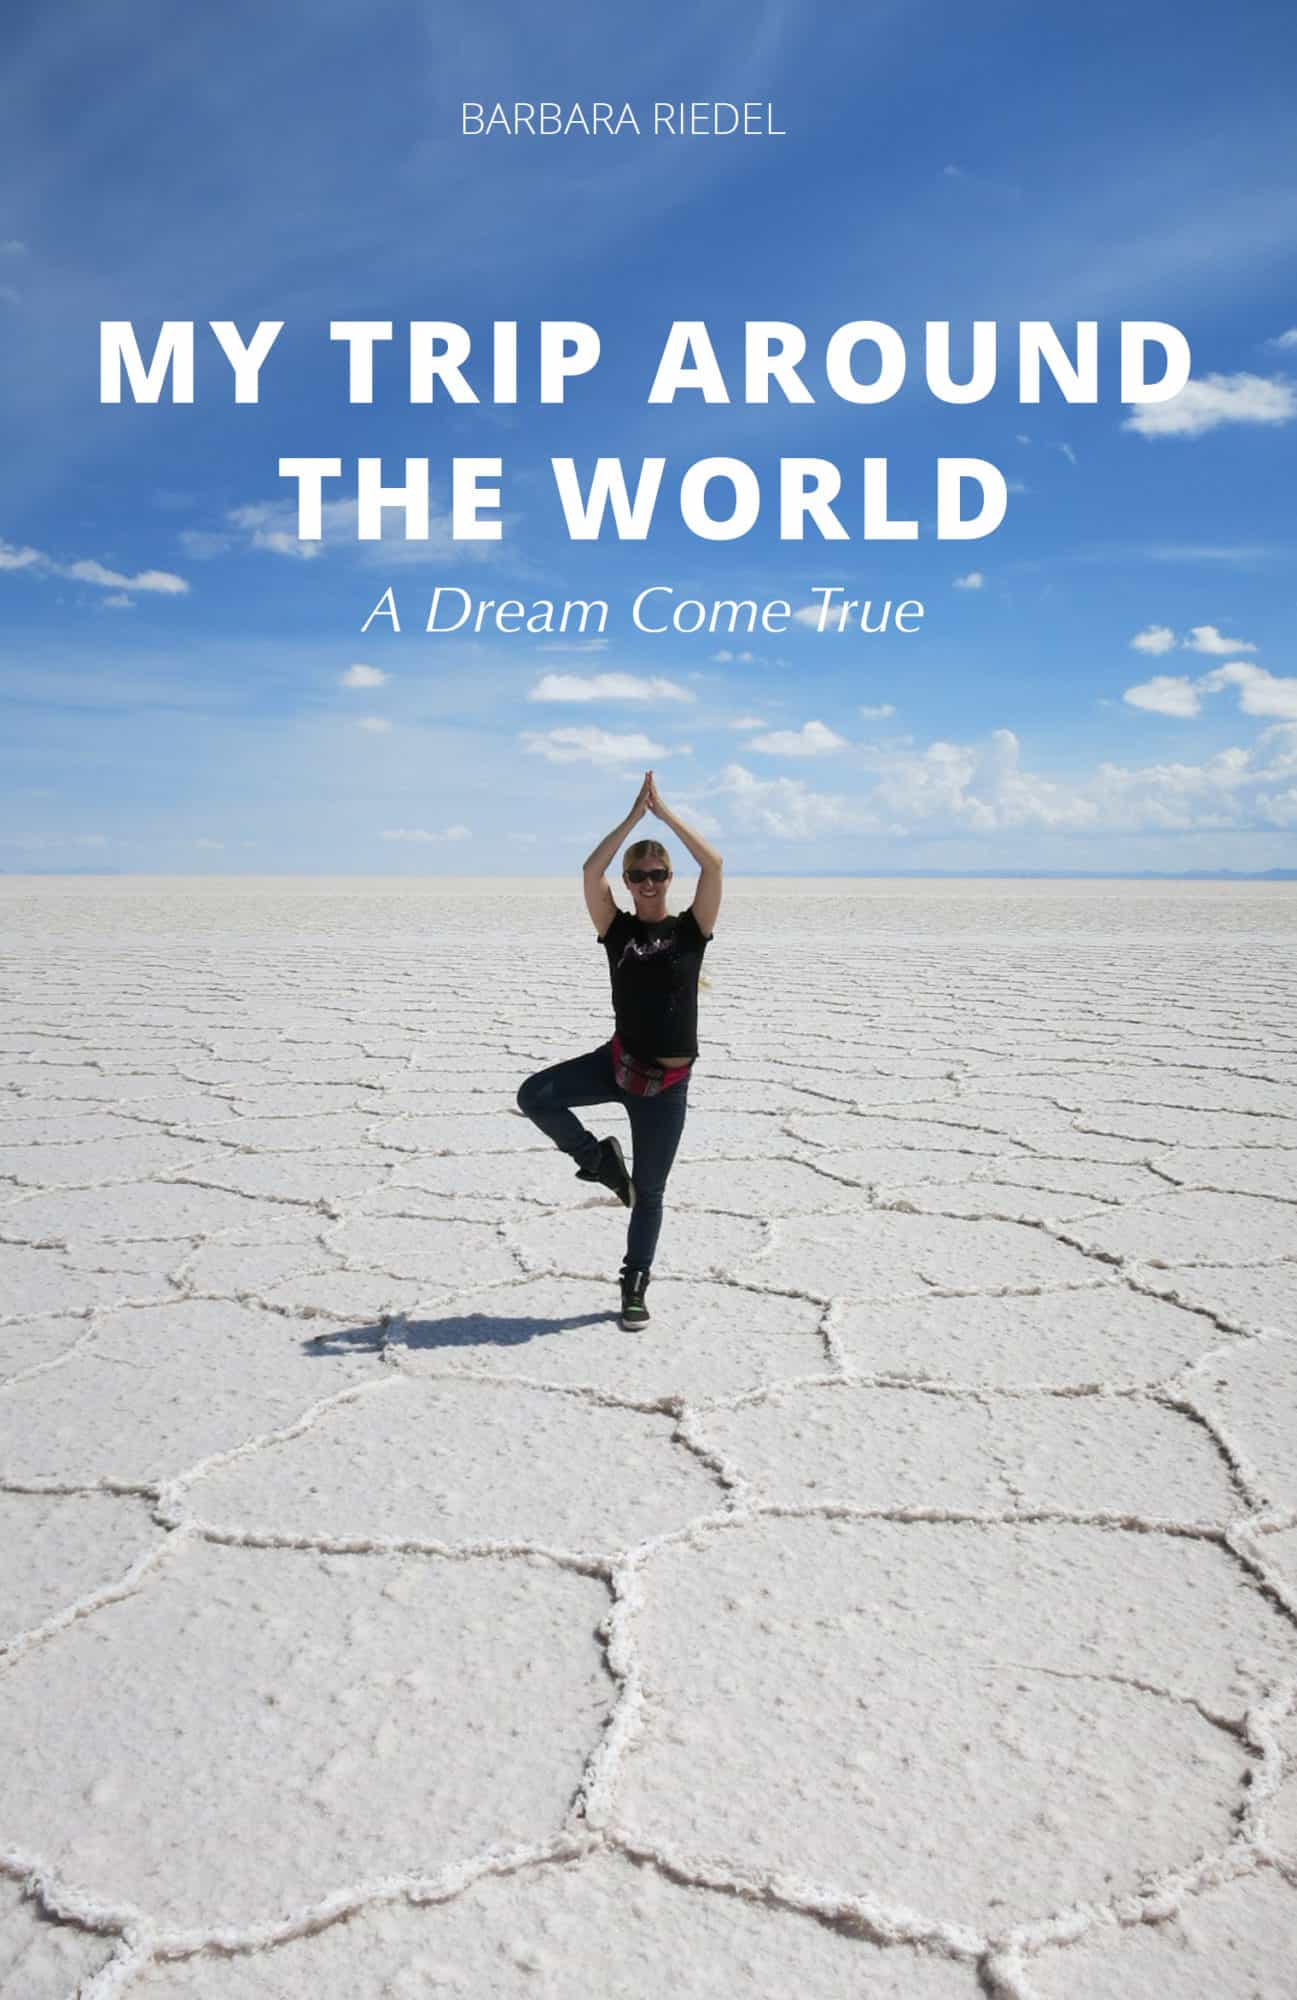 My Trip Around the World – Coming soon